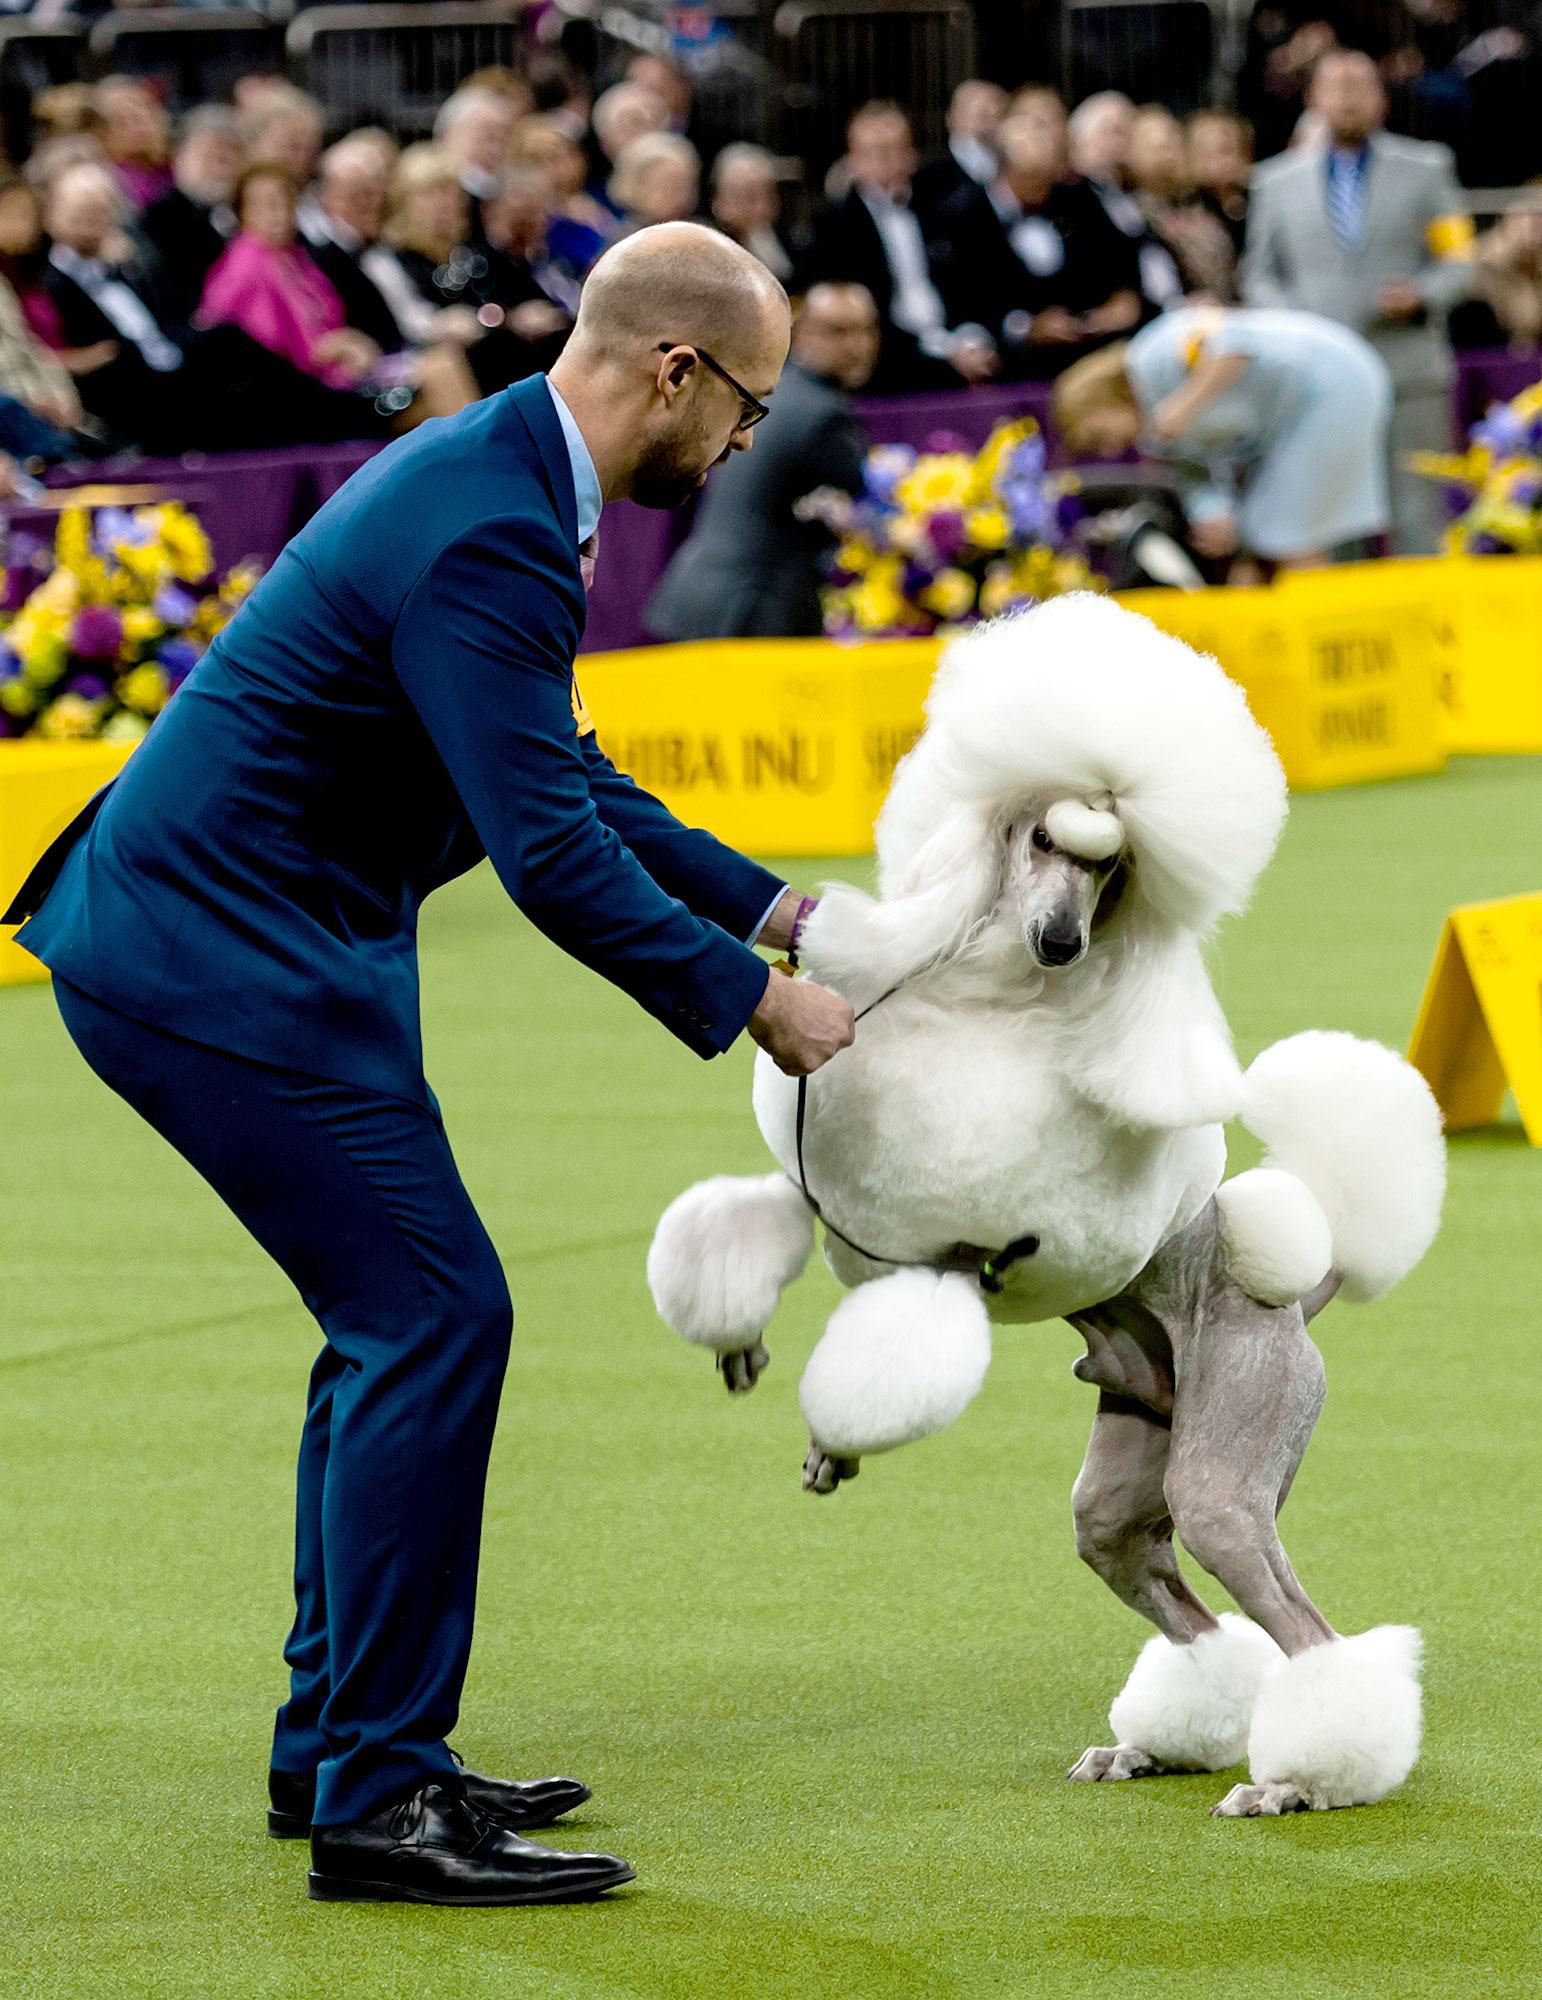 Best of breed Standard Poodle CH Afterglow Tyrone Power competes to represent the Non-Sporting group in the Best in Show final of the 141st Westminster Kennel Club Dog Show at Madison Square Garden on February 13, 2017 in New York City.